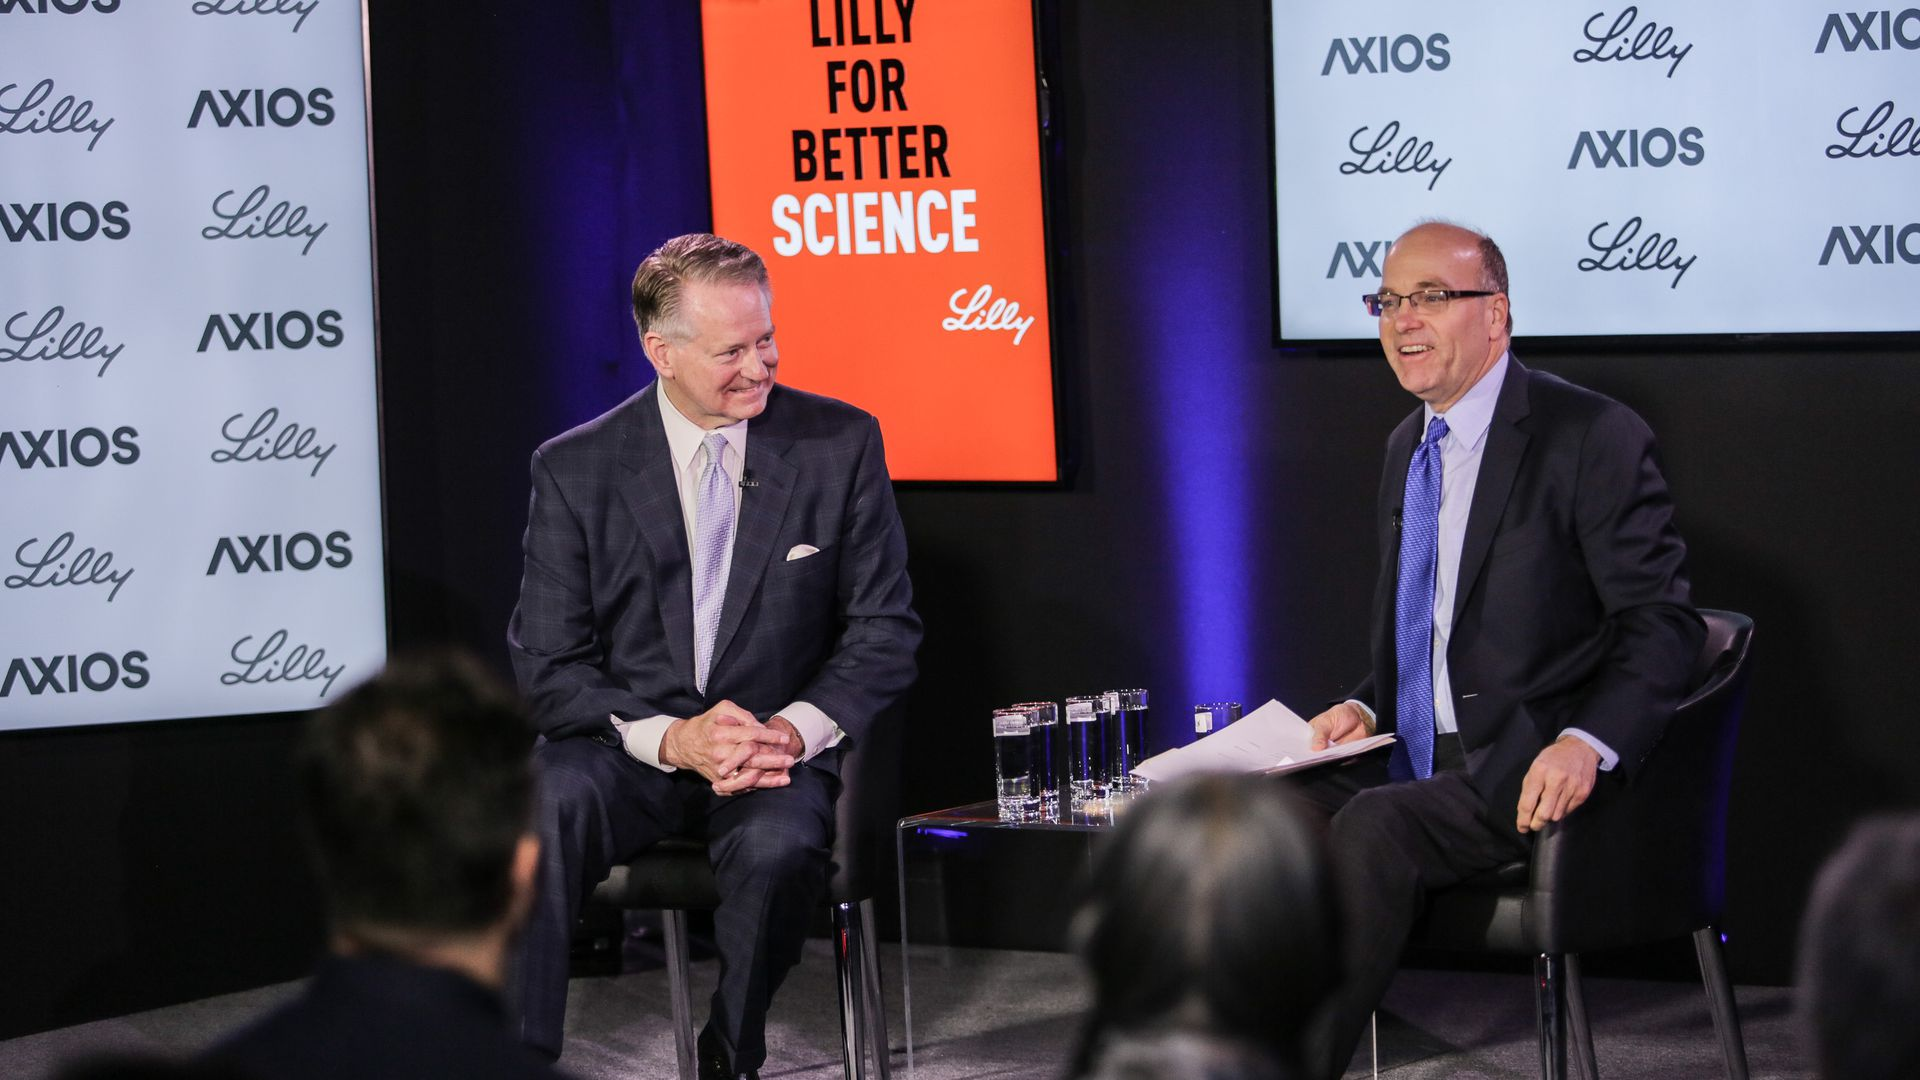 Mayor Steve Williams and Mike Allen sit on the Axios stage for an event.